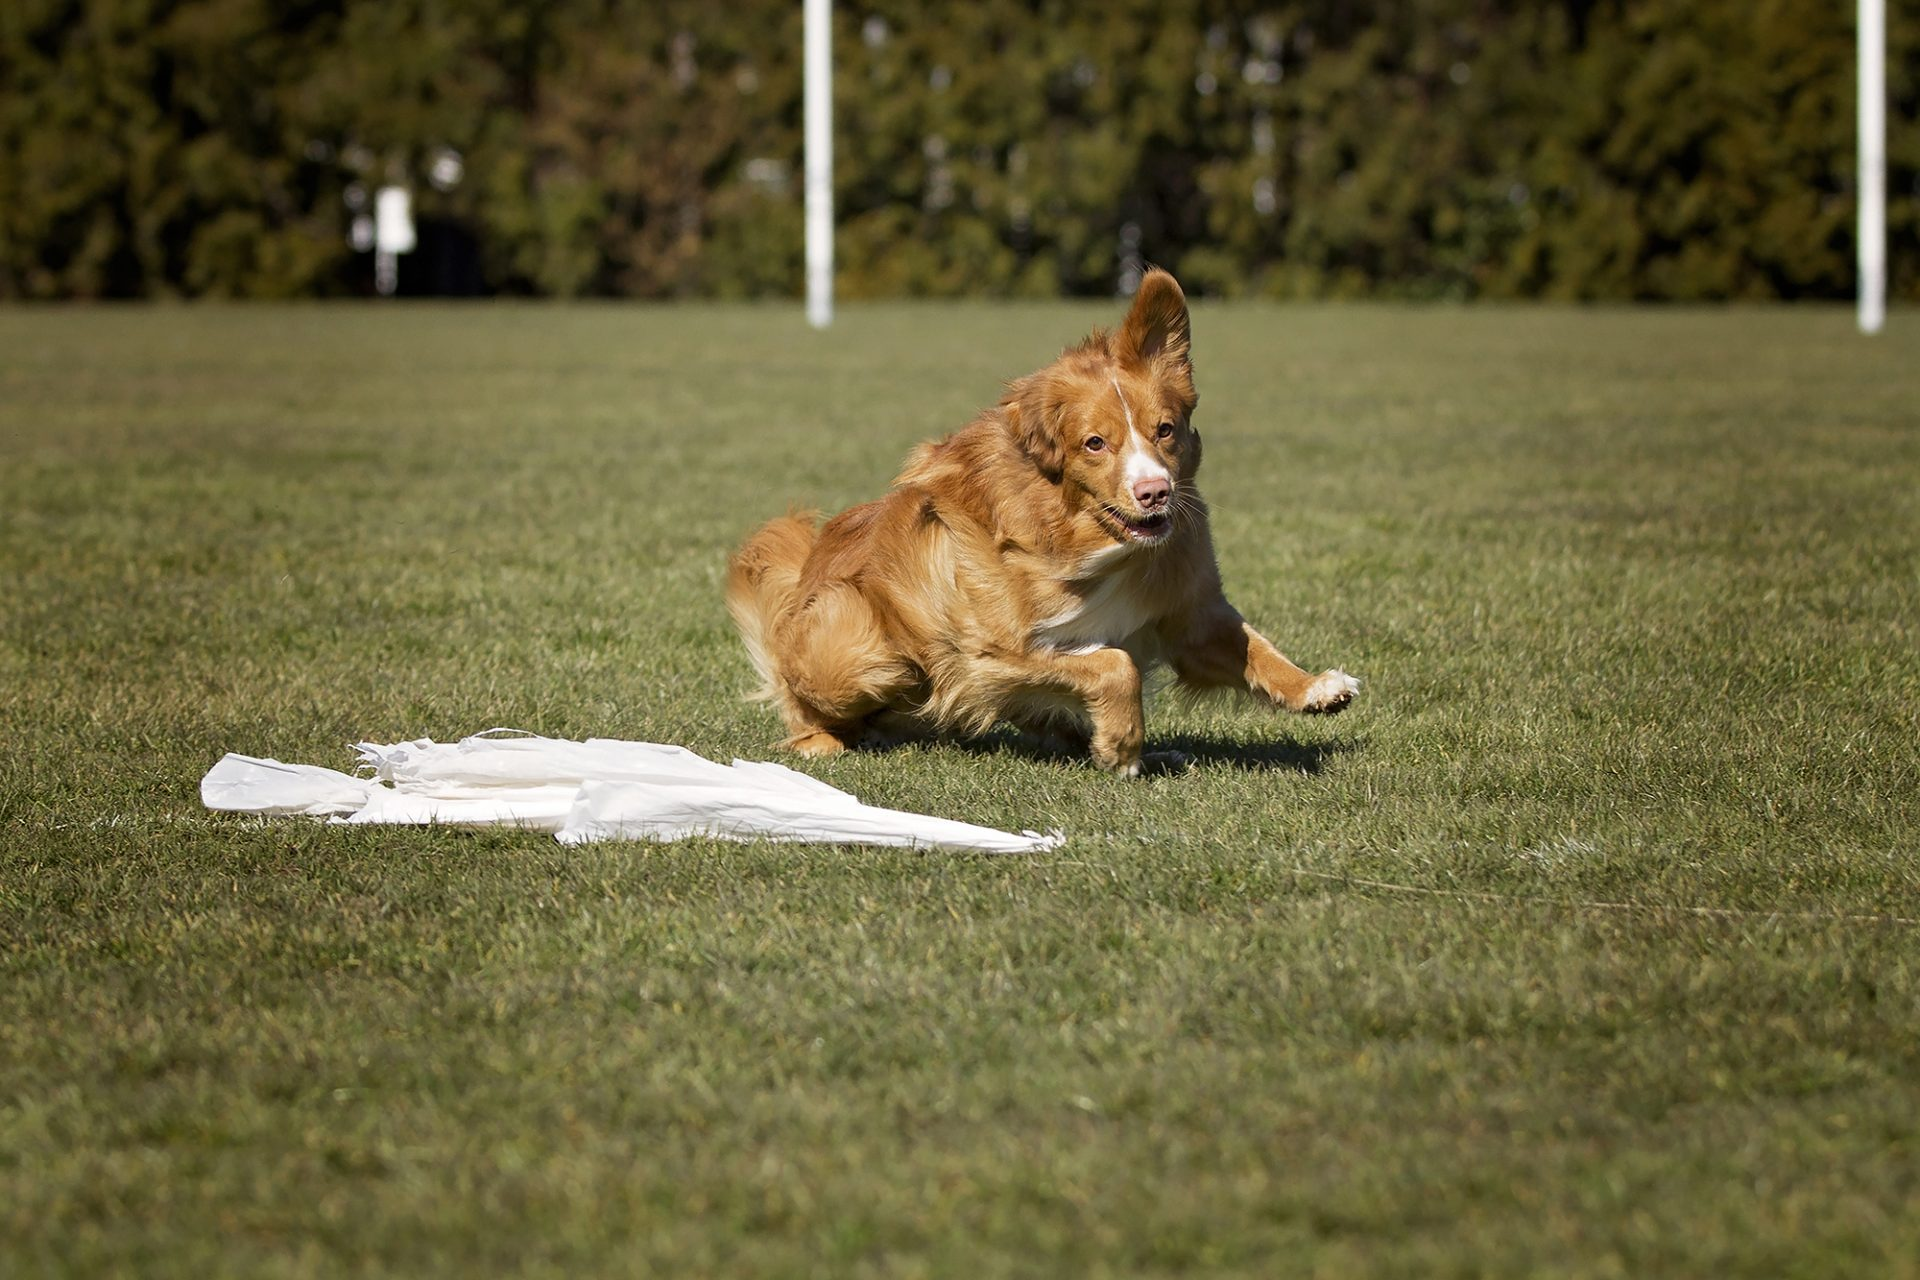 Nova Soctia Duck Tolling Retriever chasing bag while lurecoursing